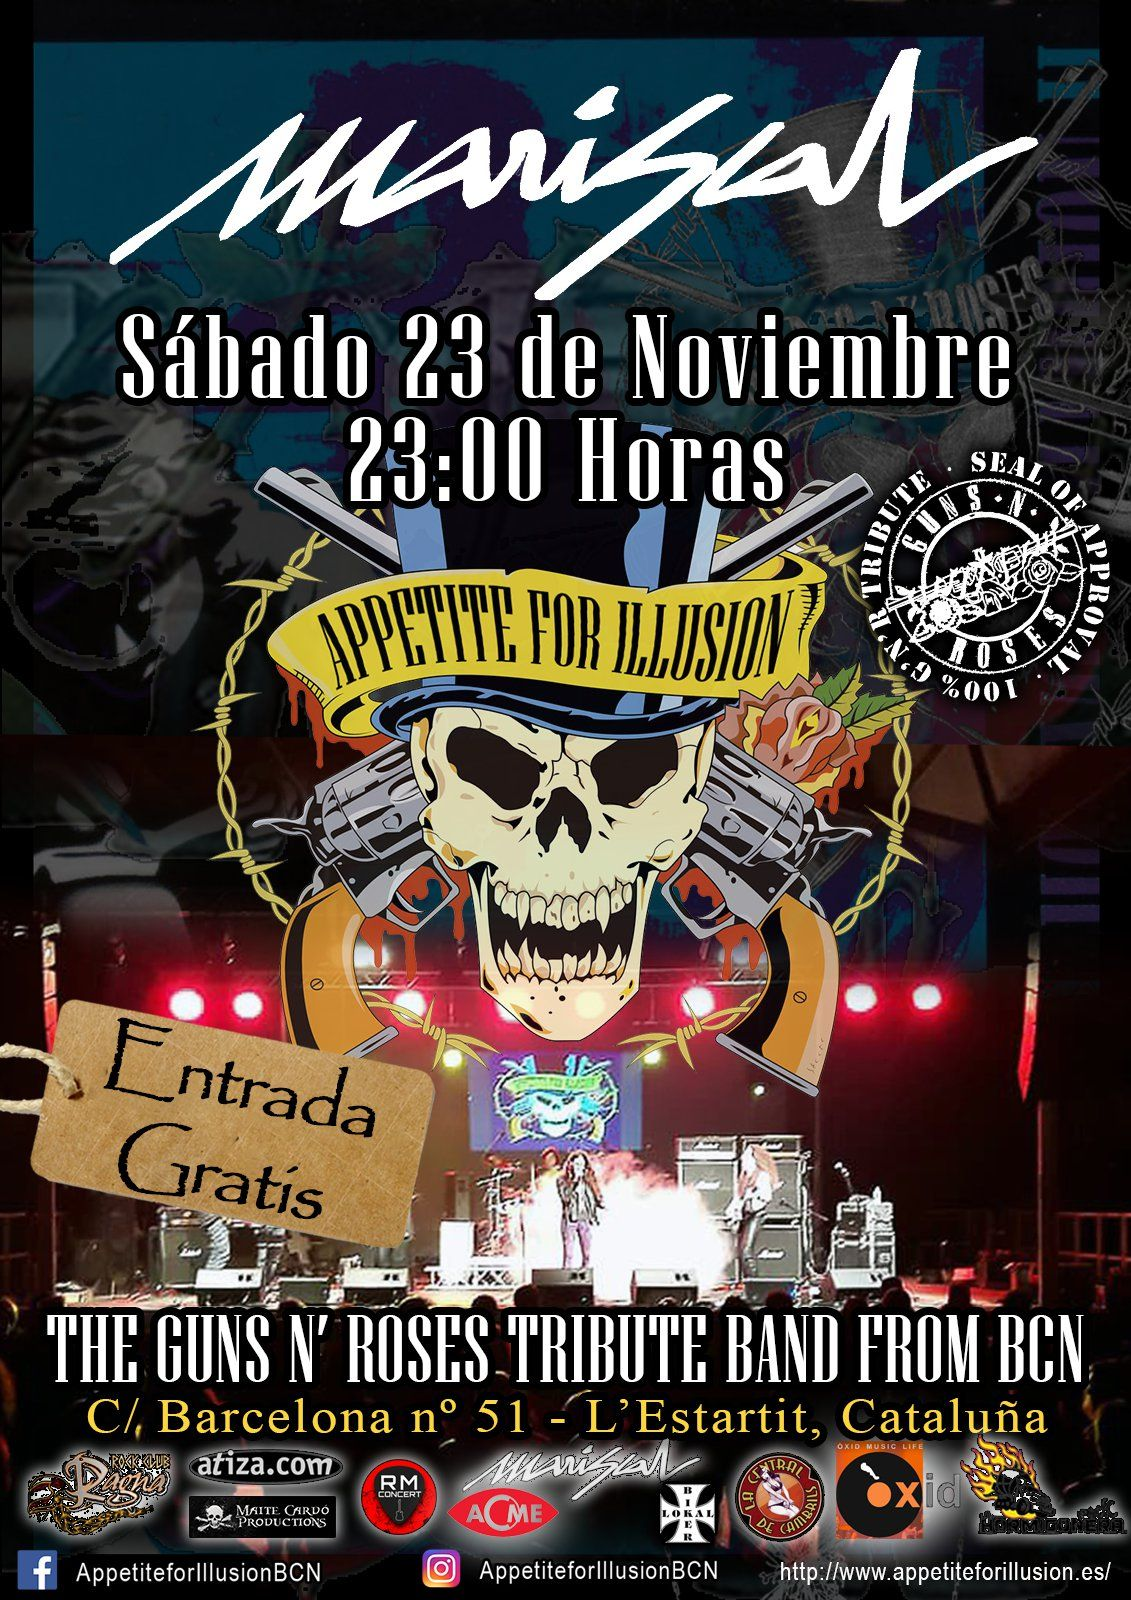 Concert de Appetite for Illusion - The Guns n' Roses Tribute...  - Appetite for Illusion en L'Estartit (Sala Mariscal)